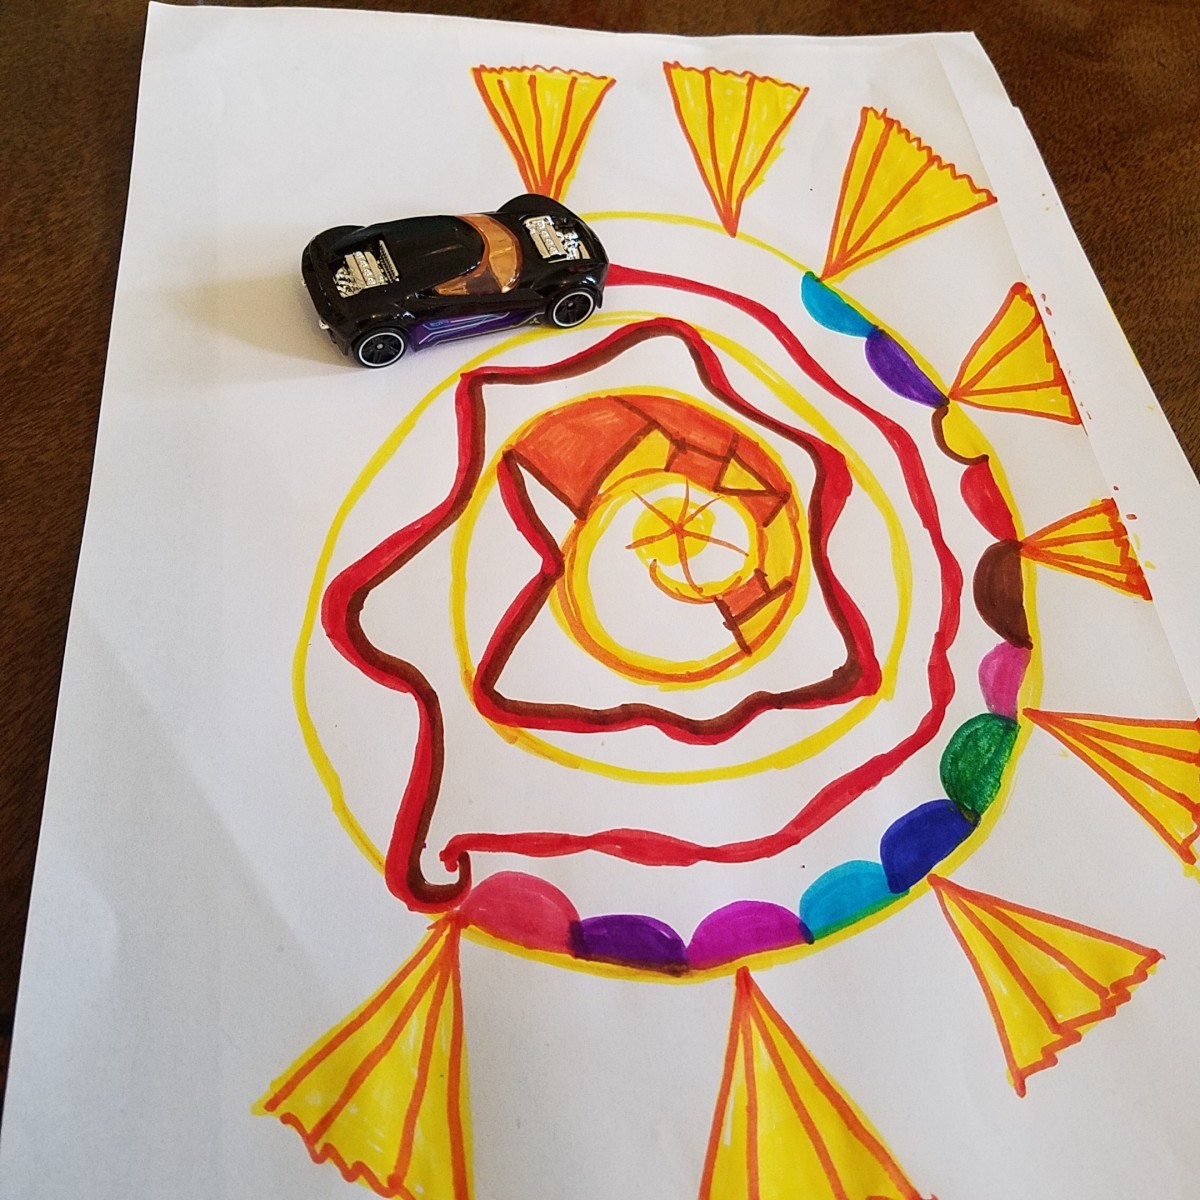 Toy car entering a spiral I drew with markers.   Play has often led to world-changing discoveries.